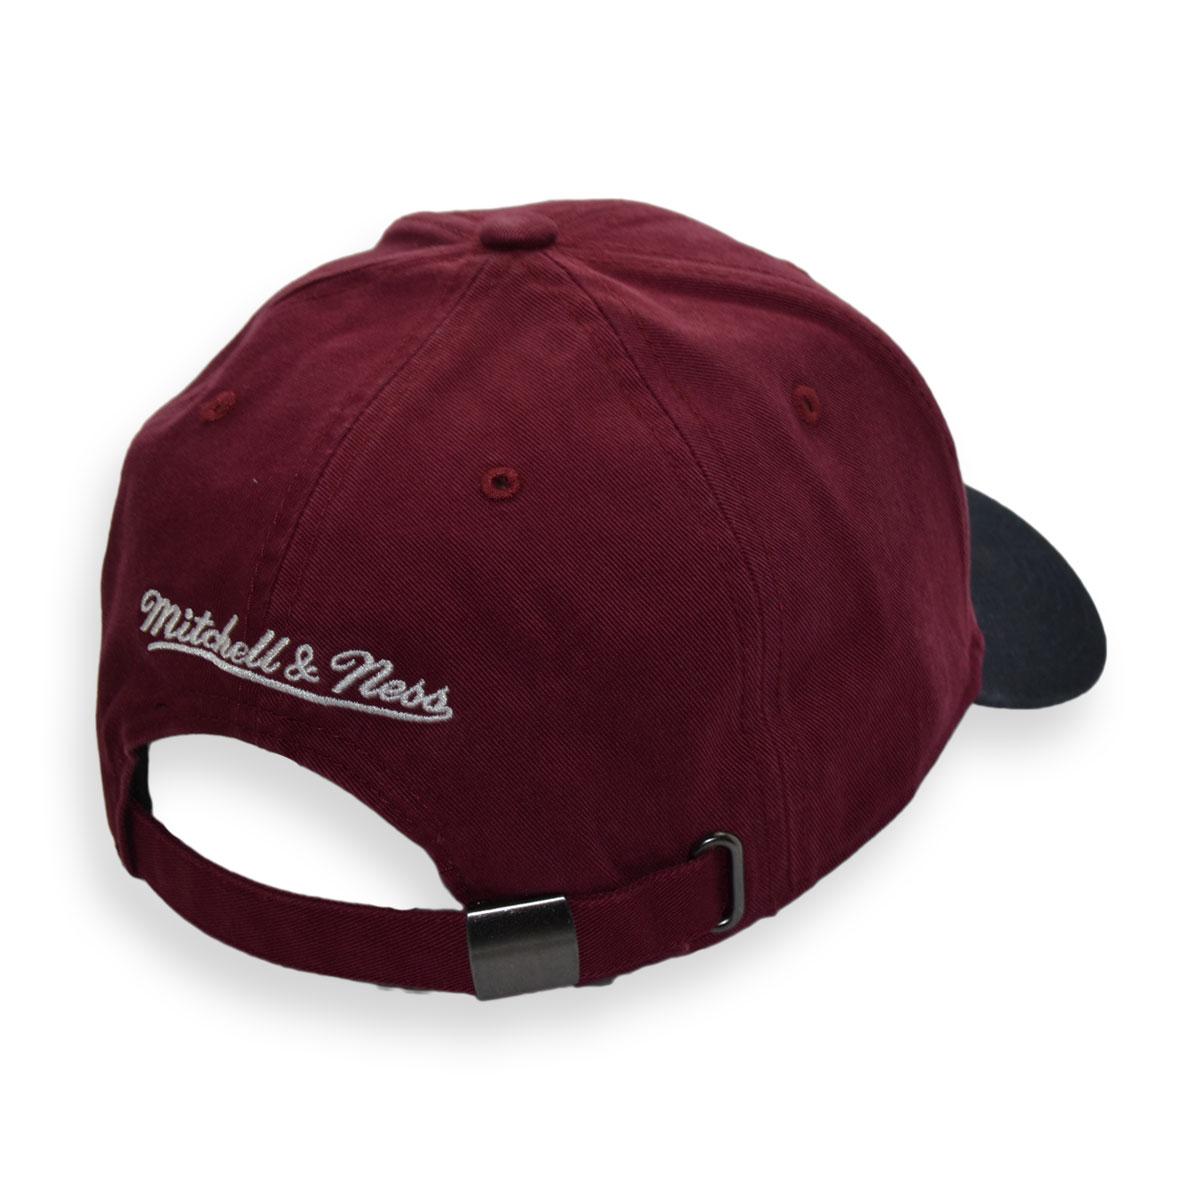 2d7bc26dd89 mitchell   ness cleveland cavaliers two tone wordmark strapback cap